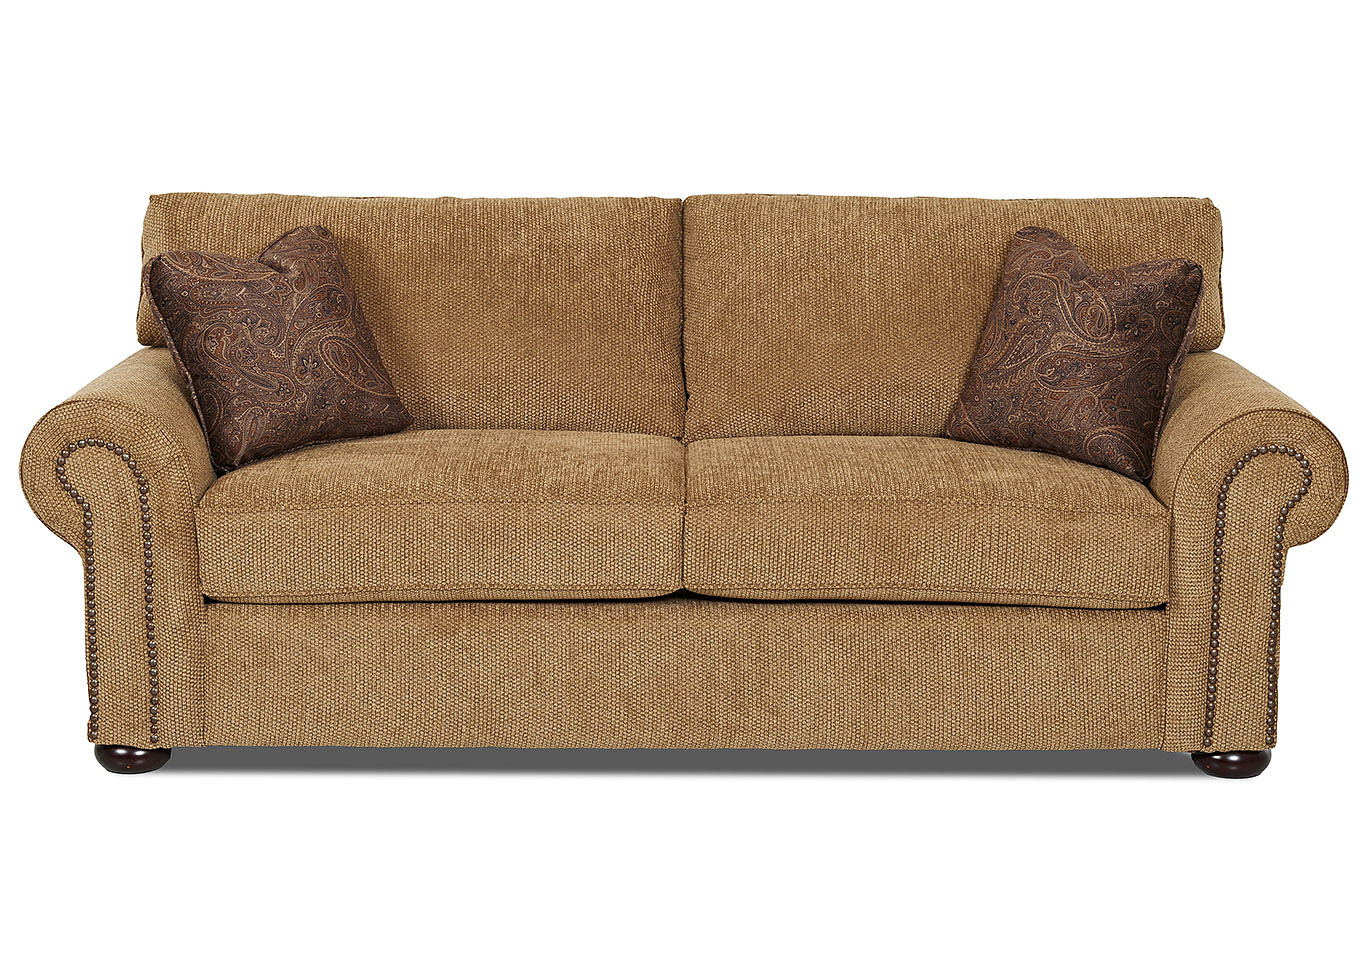 brown fabric sofa charcoal velvet tufted beverly hills furniture queens sienna light klaussner home furnishings